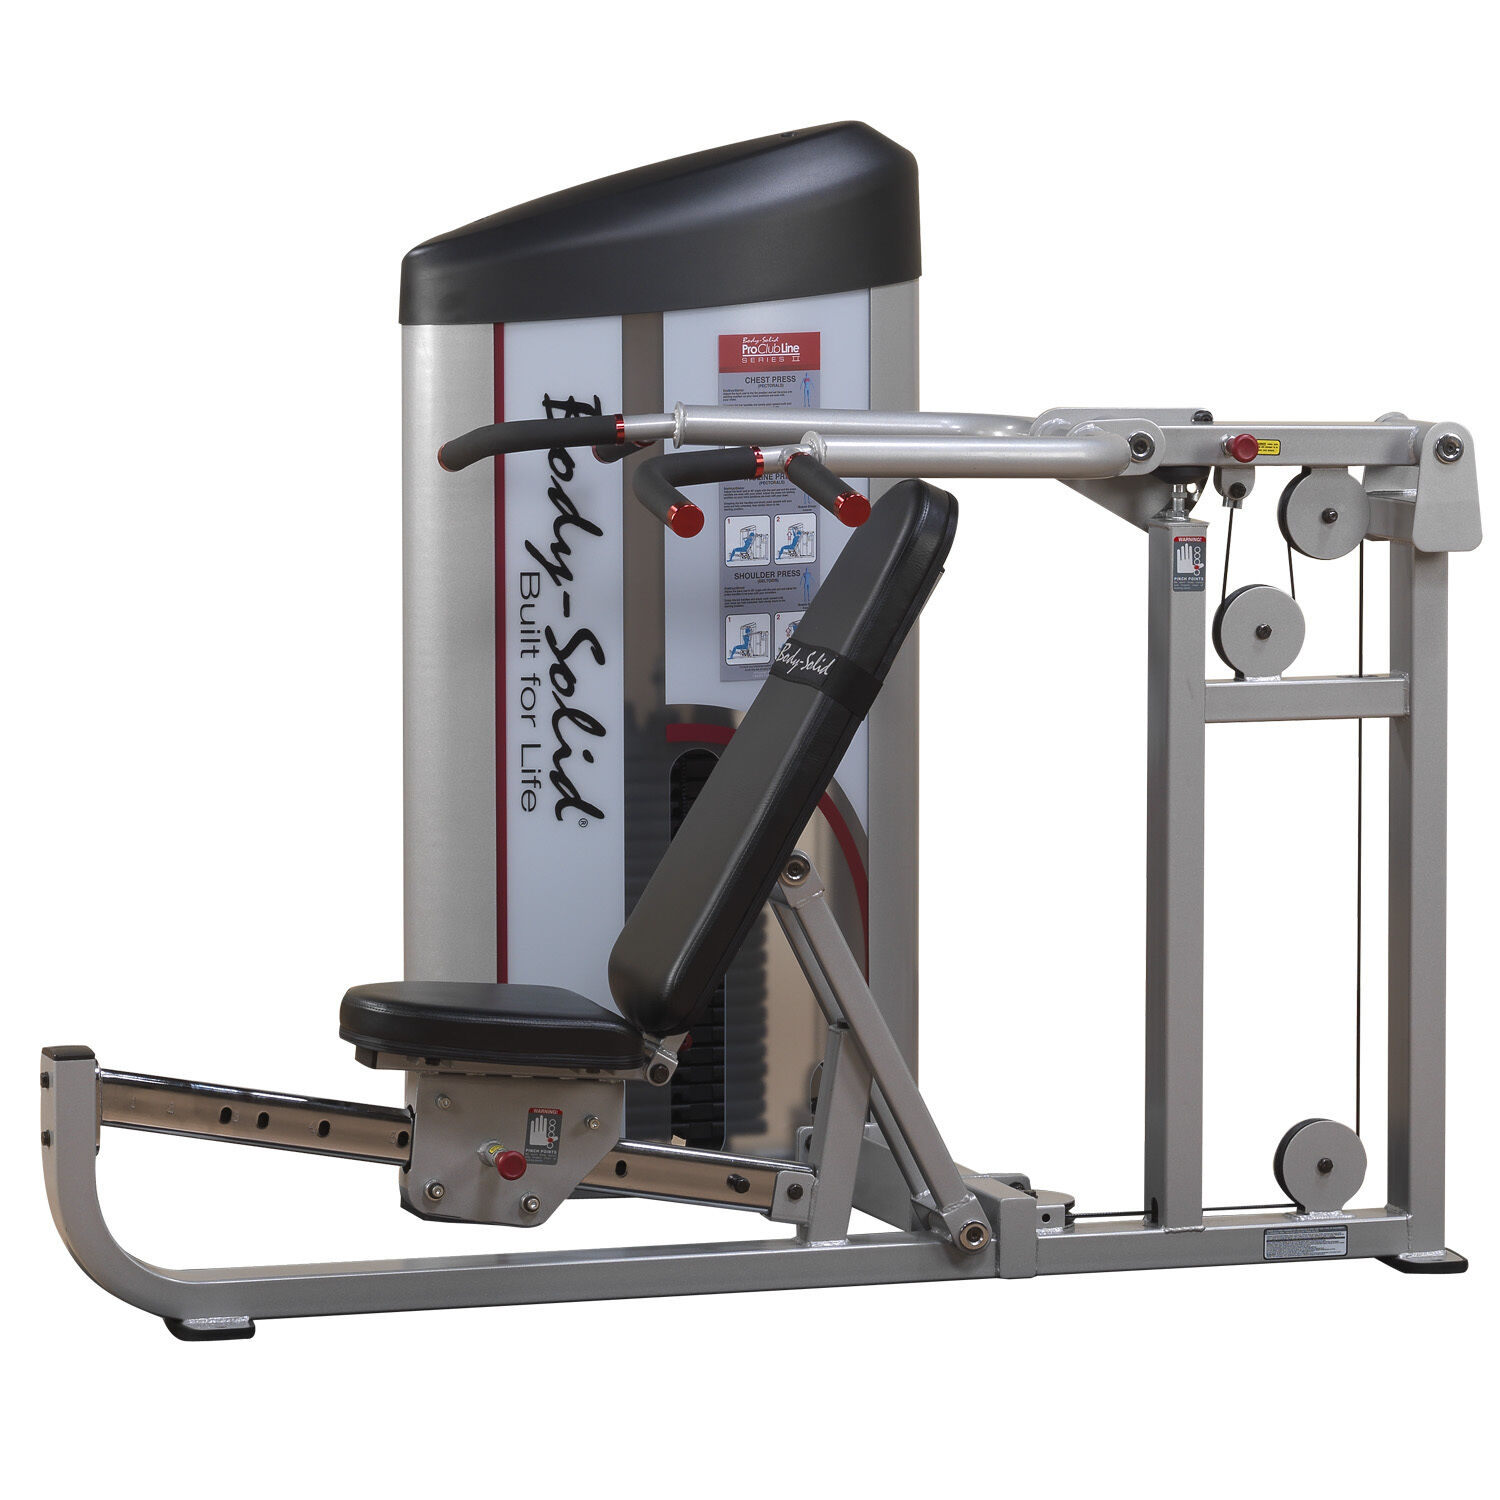 Body-Solid Pro Clubline  Series 2 MultiPress 210 lb. - S2MP 2 - Scratch N' Dent  selling well all over the world